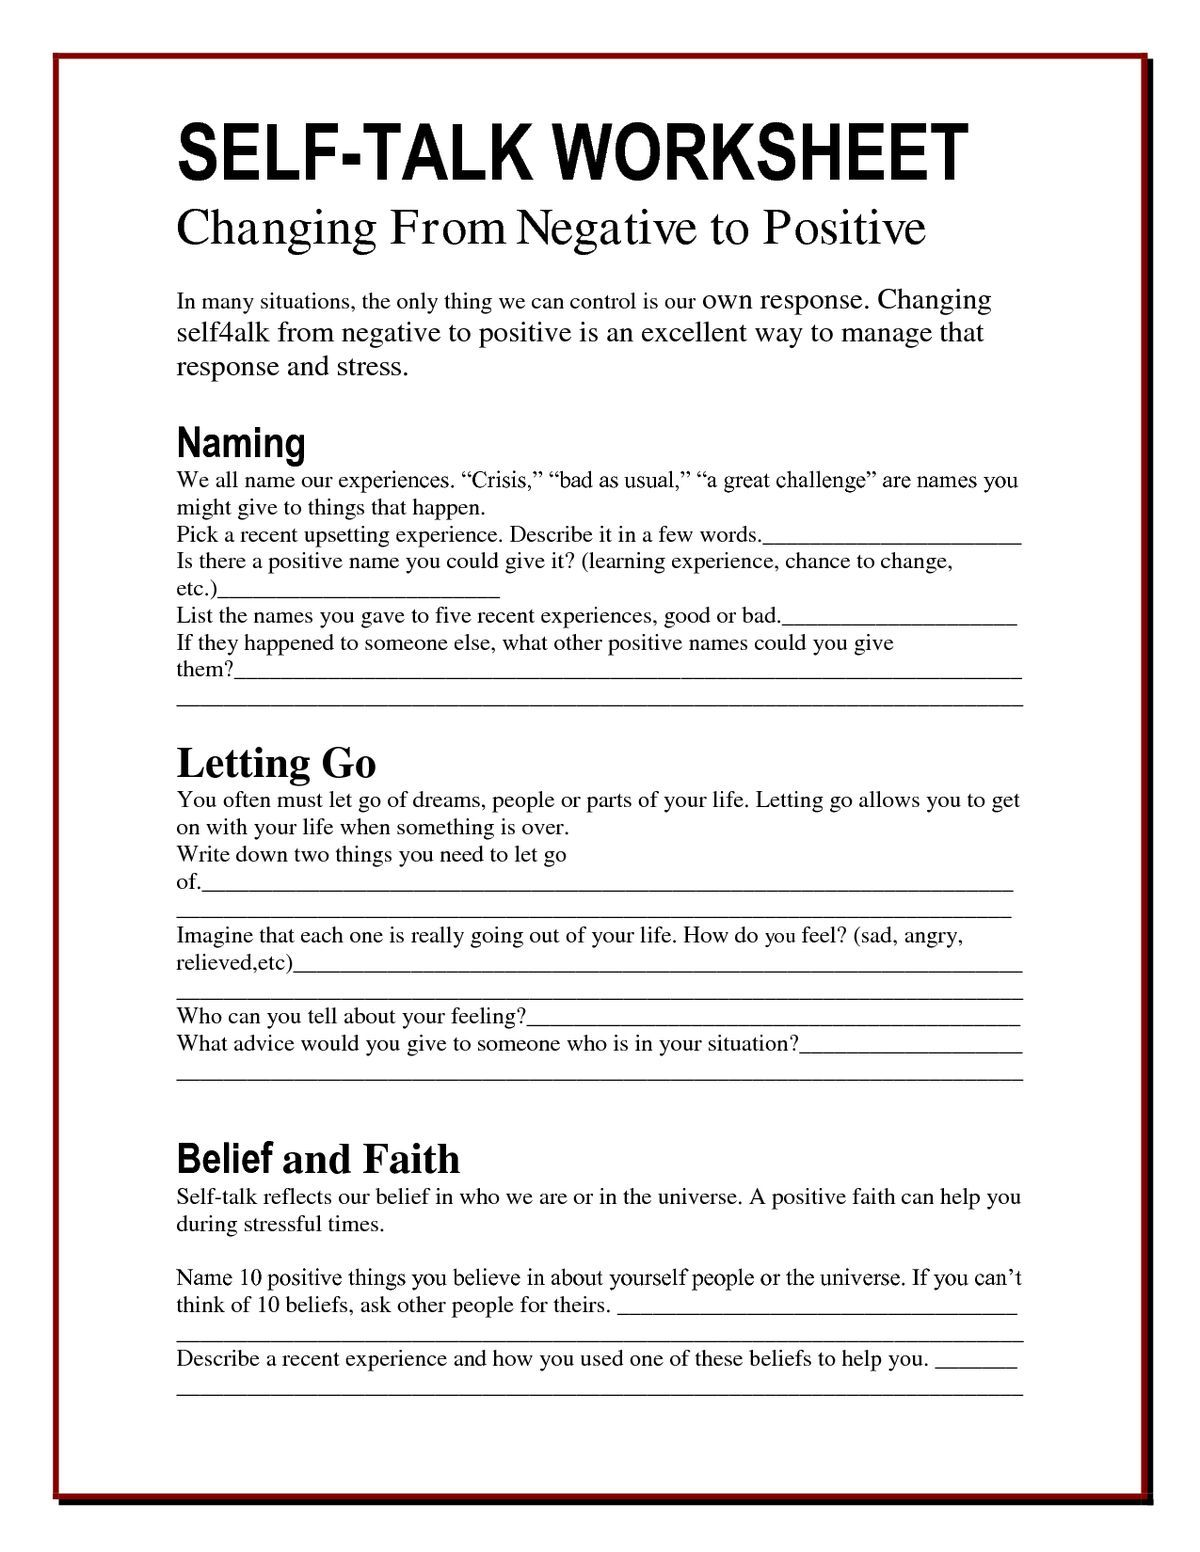 Worksheets Anxiety Worksheets For Children anger worksheets google search positive thinking pinterest the worry bag self talk worksheet archives healing path with children teens